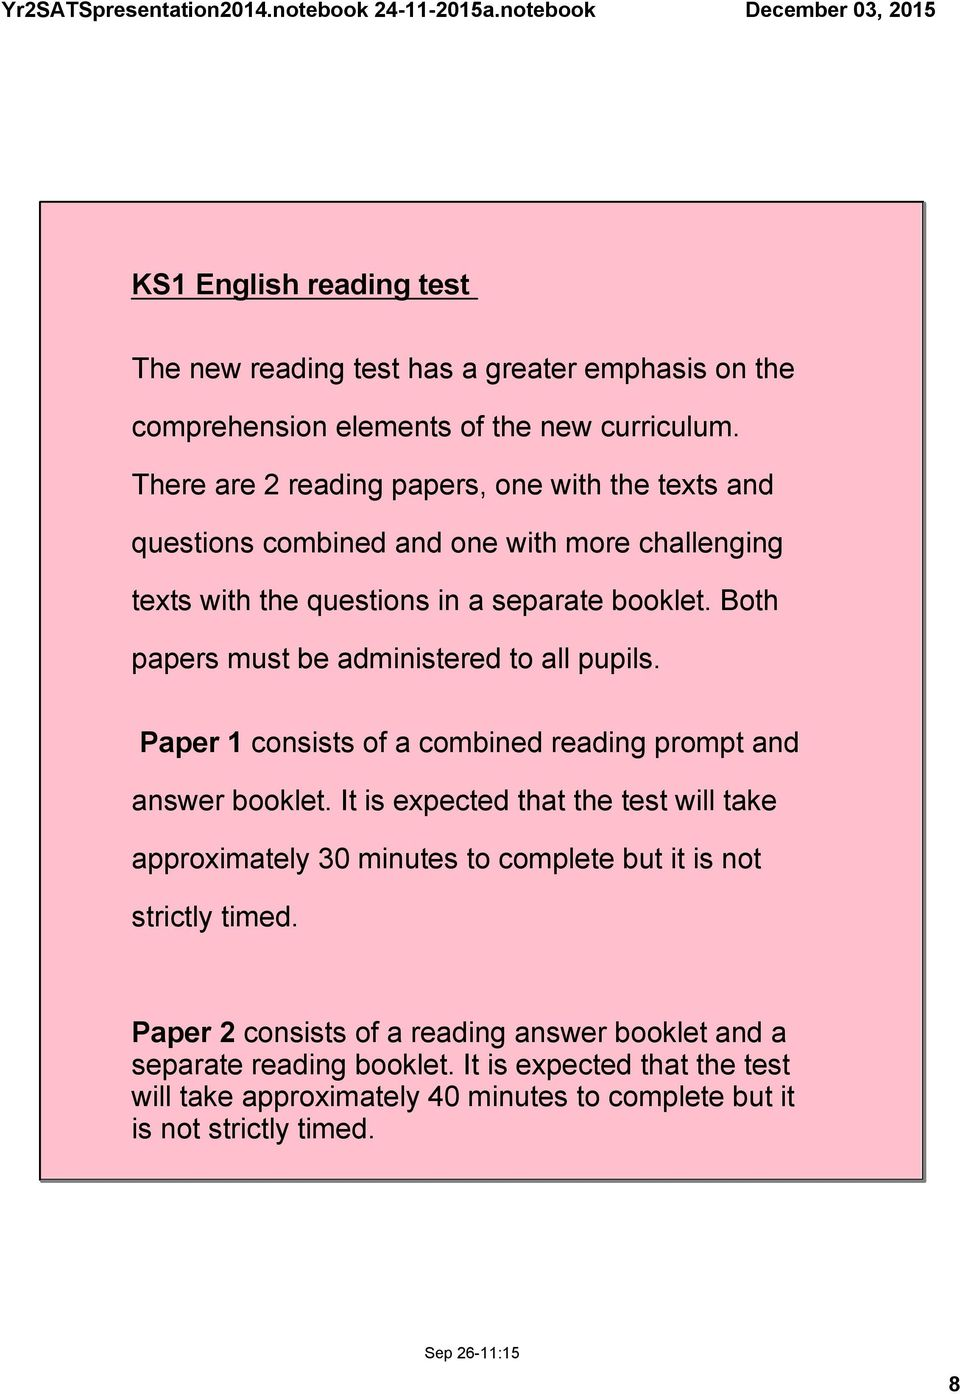 Both papers must be administered to all pupils. Paper 1 consists of a combined reading prompt and answer booklet.